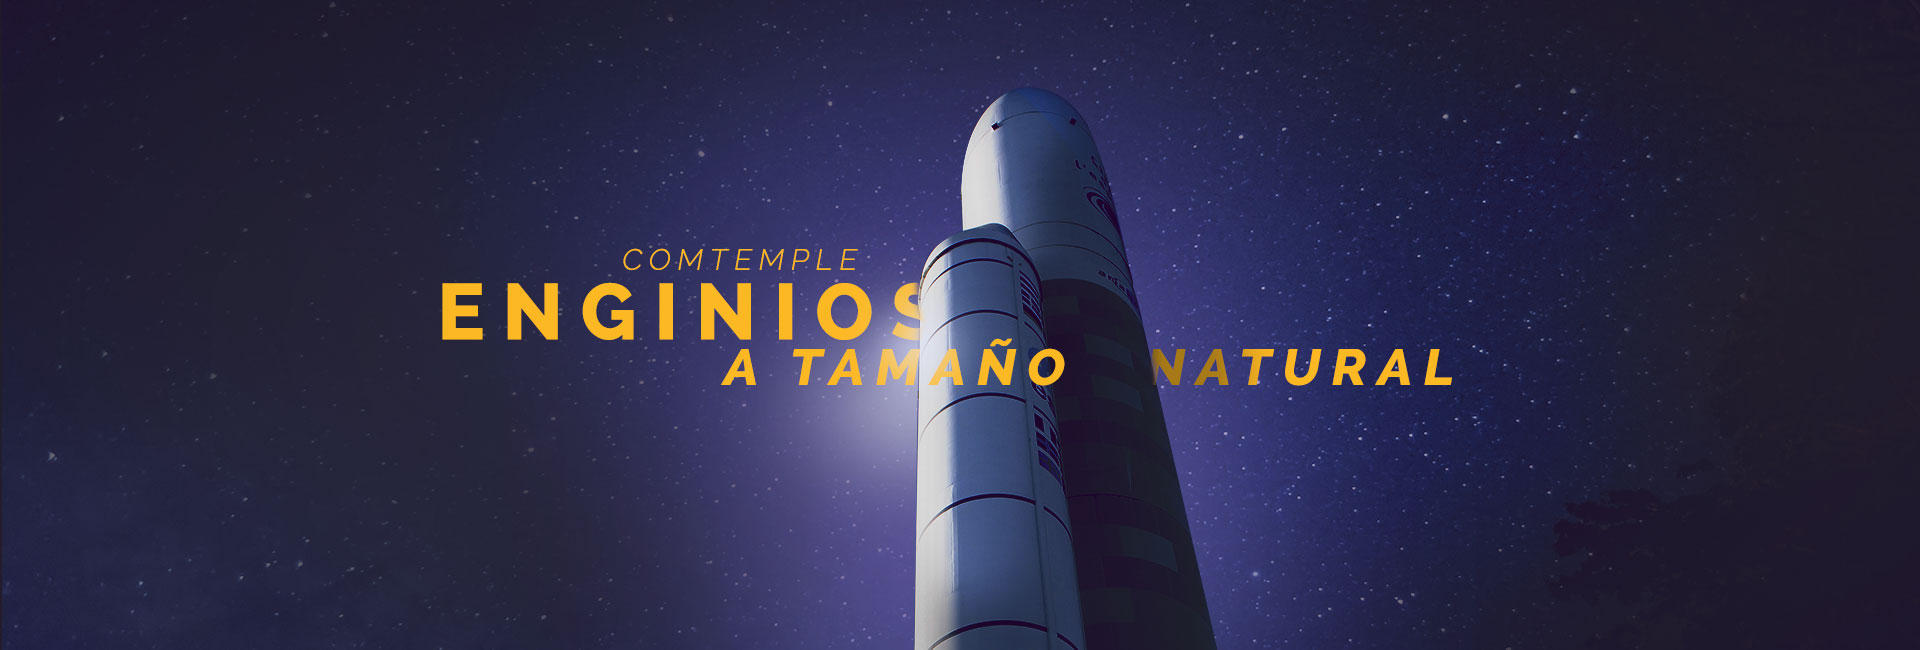 ¡Contemple ingenios a tamaño natural!